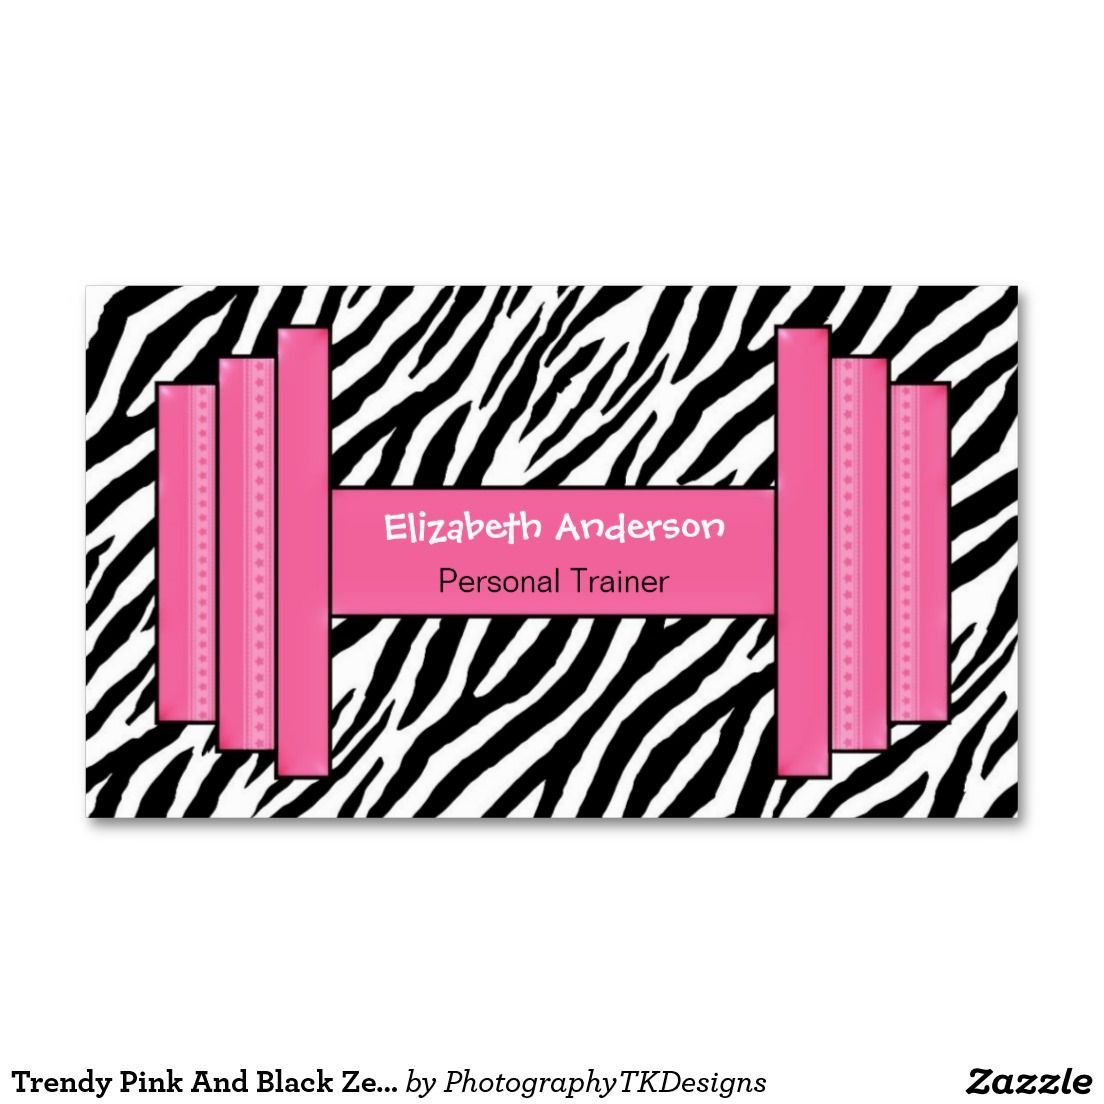 Trendy Pink And Black Zebra Print Personal Trainer Business Card ...